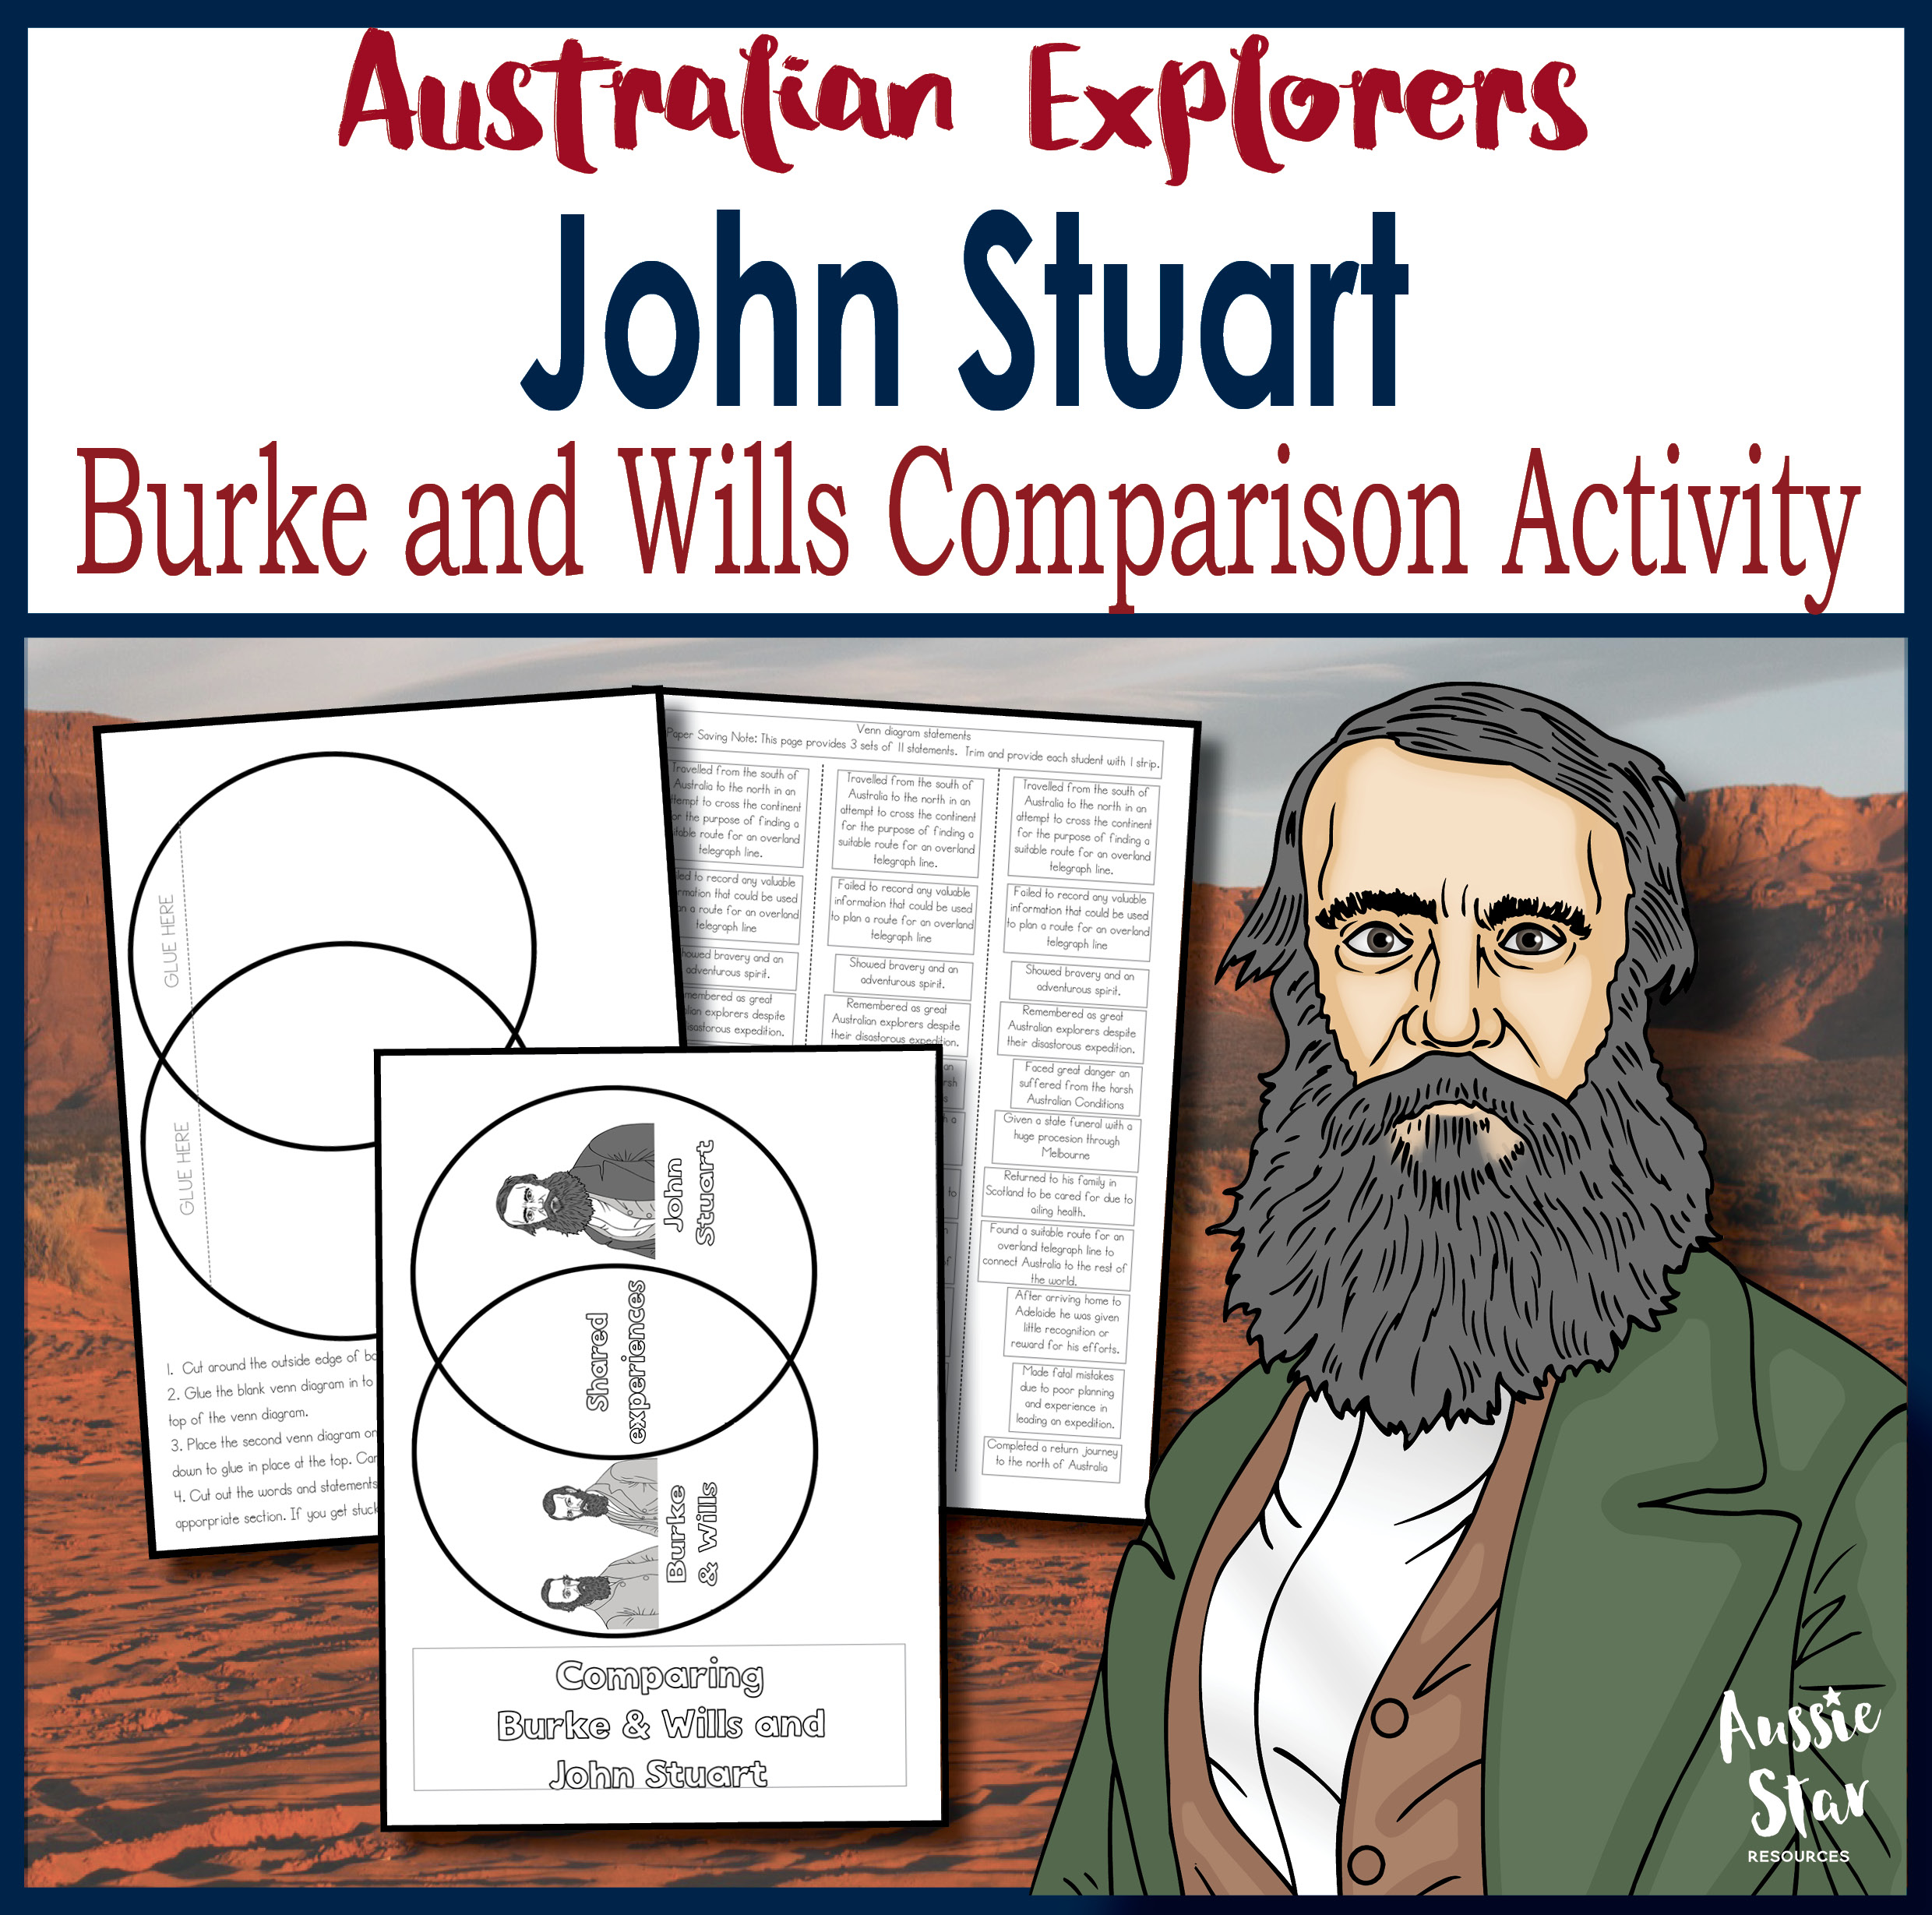 John Stuart, Burke and Wills Comparison